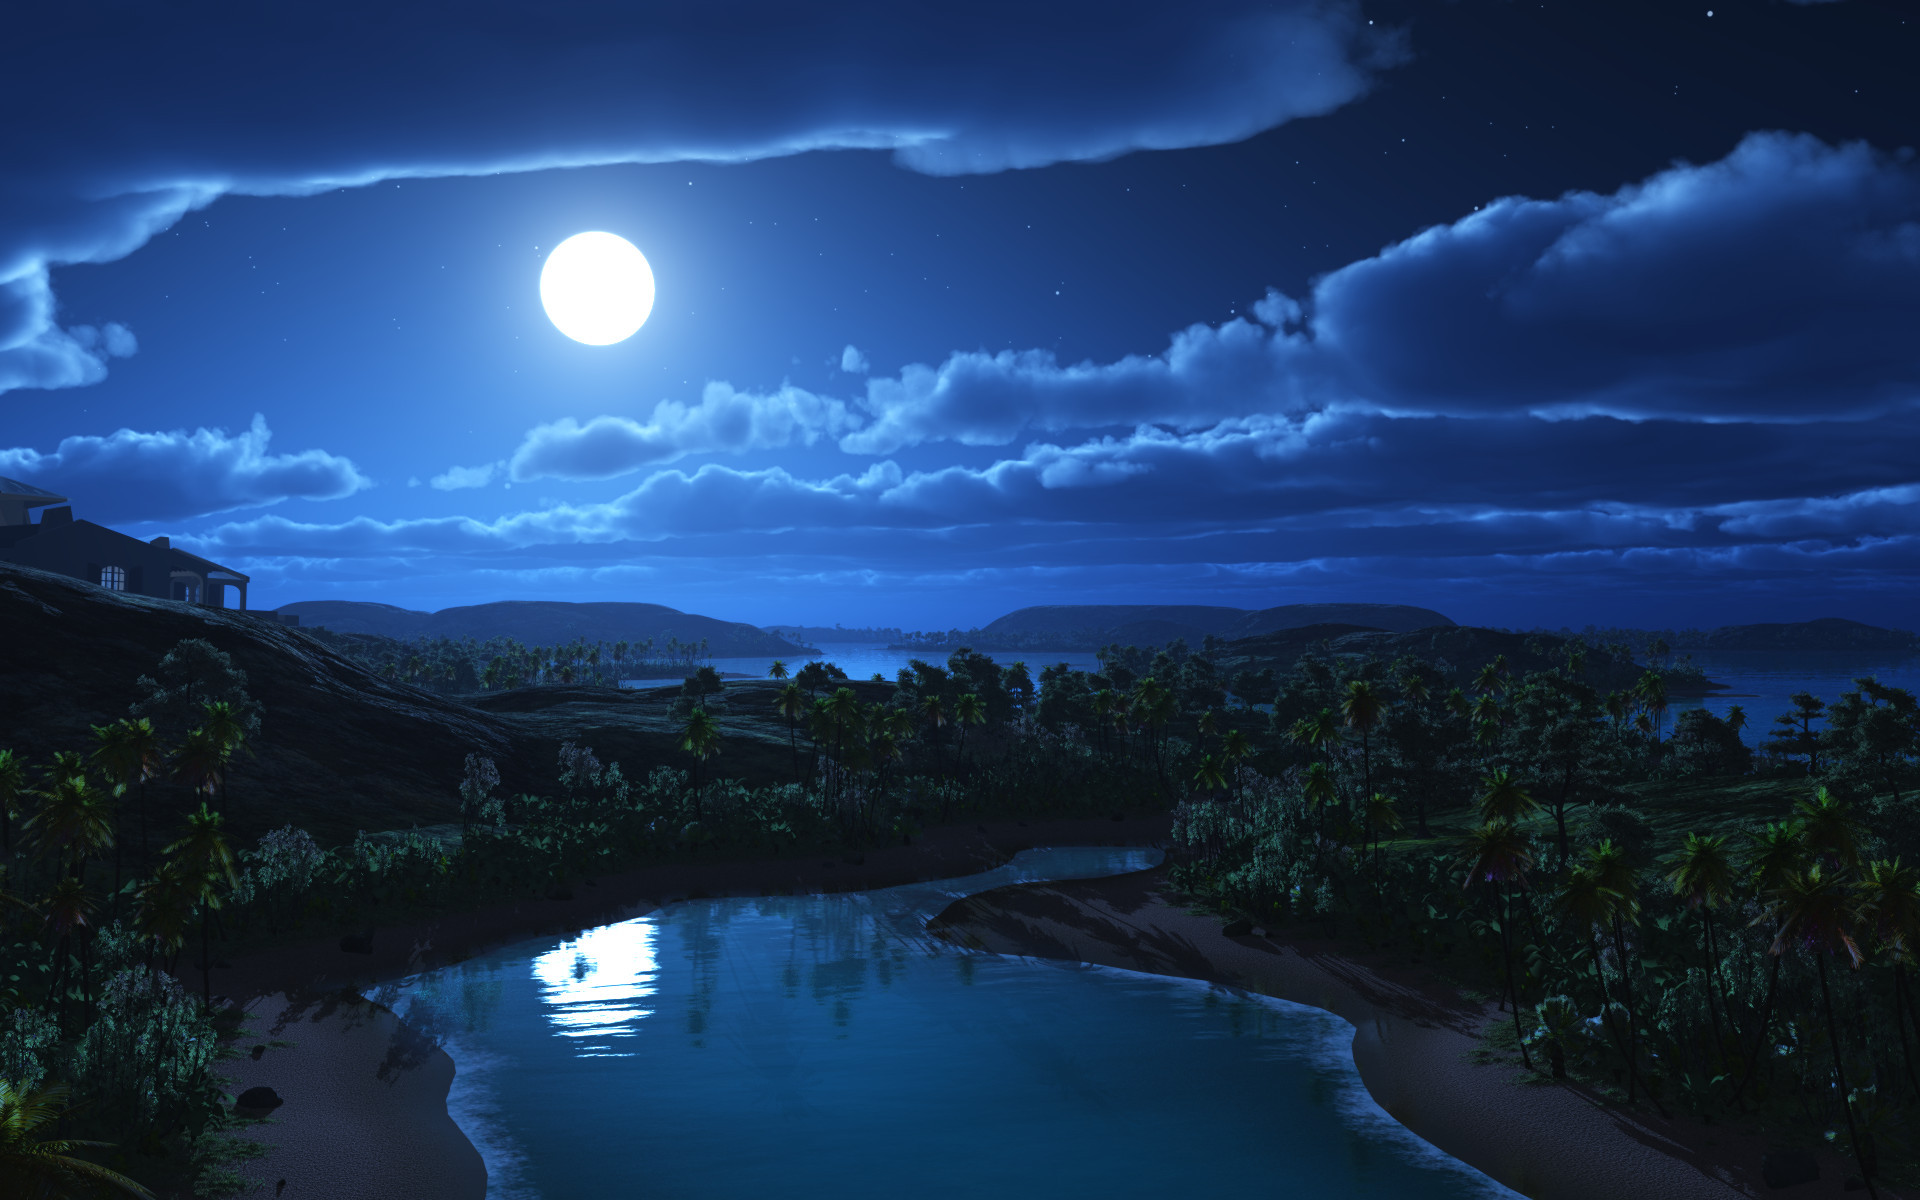 Art night moon landscape hills palm trees river house clouds 1920x1200